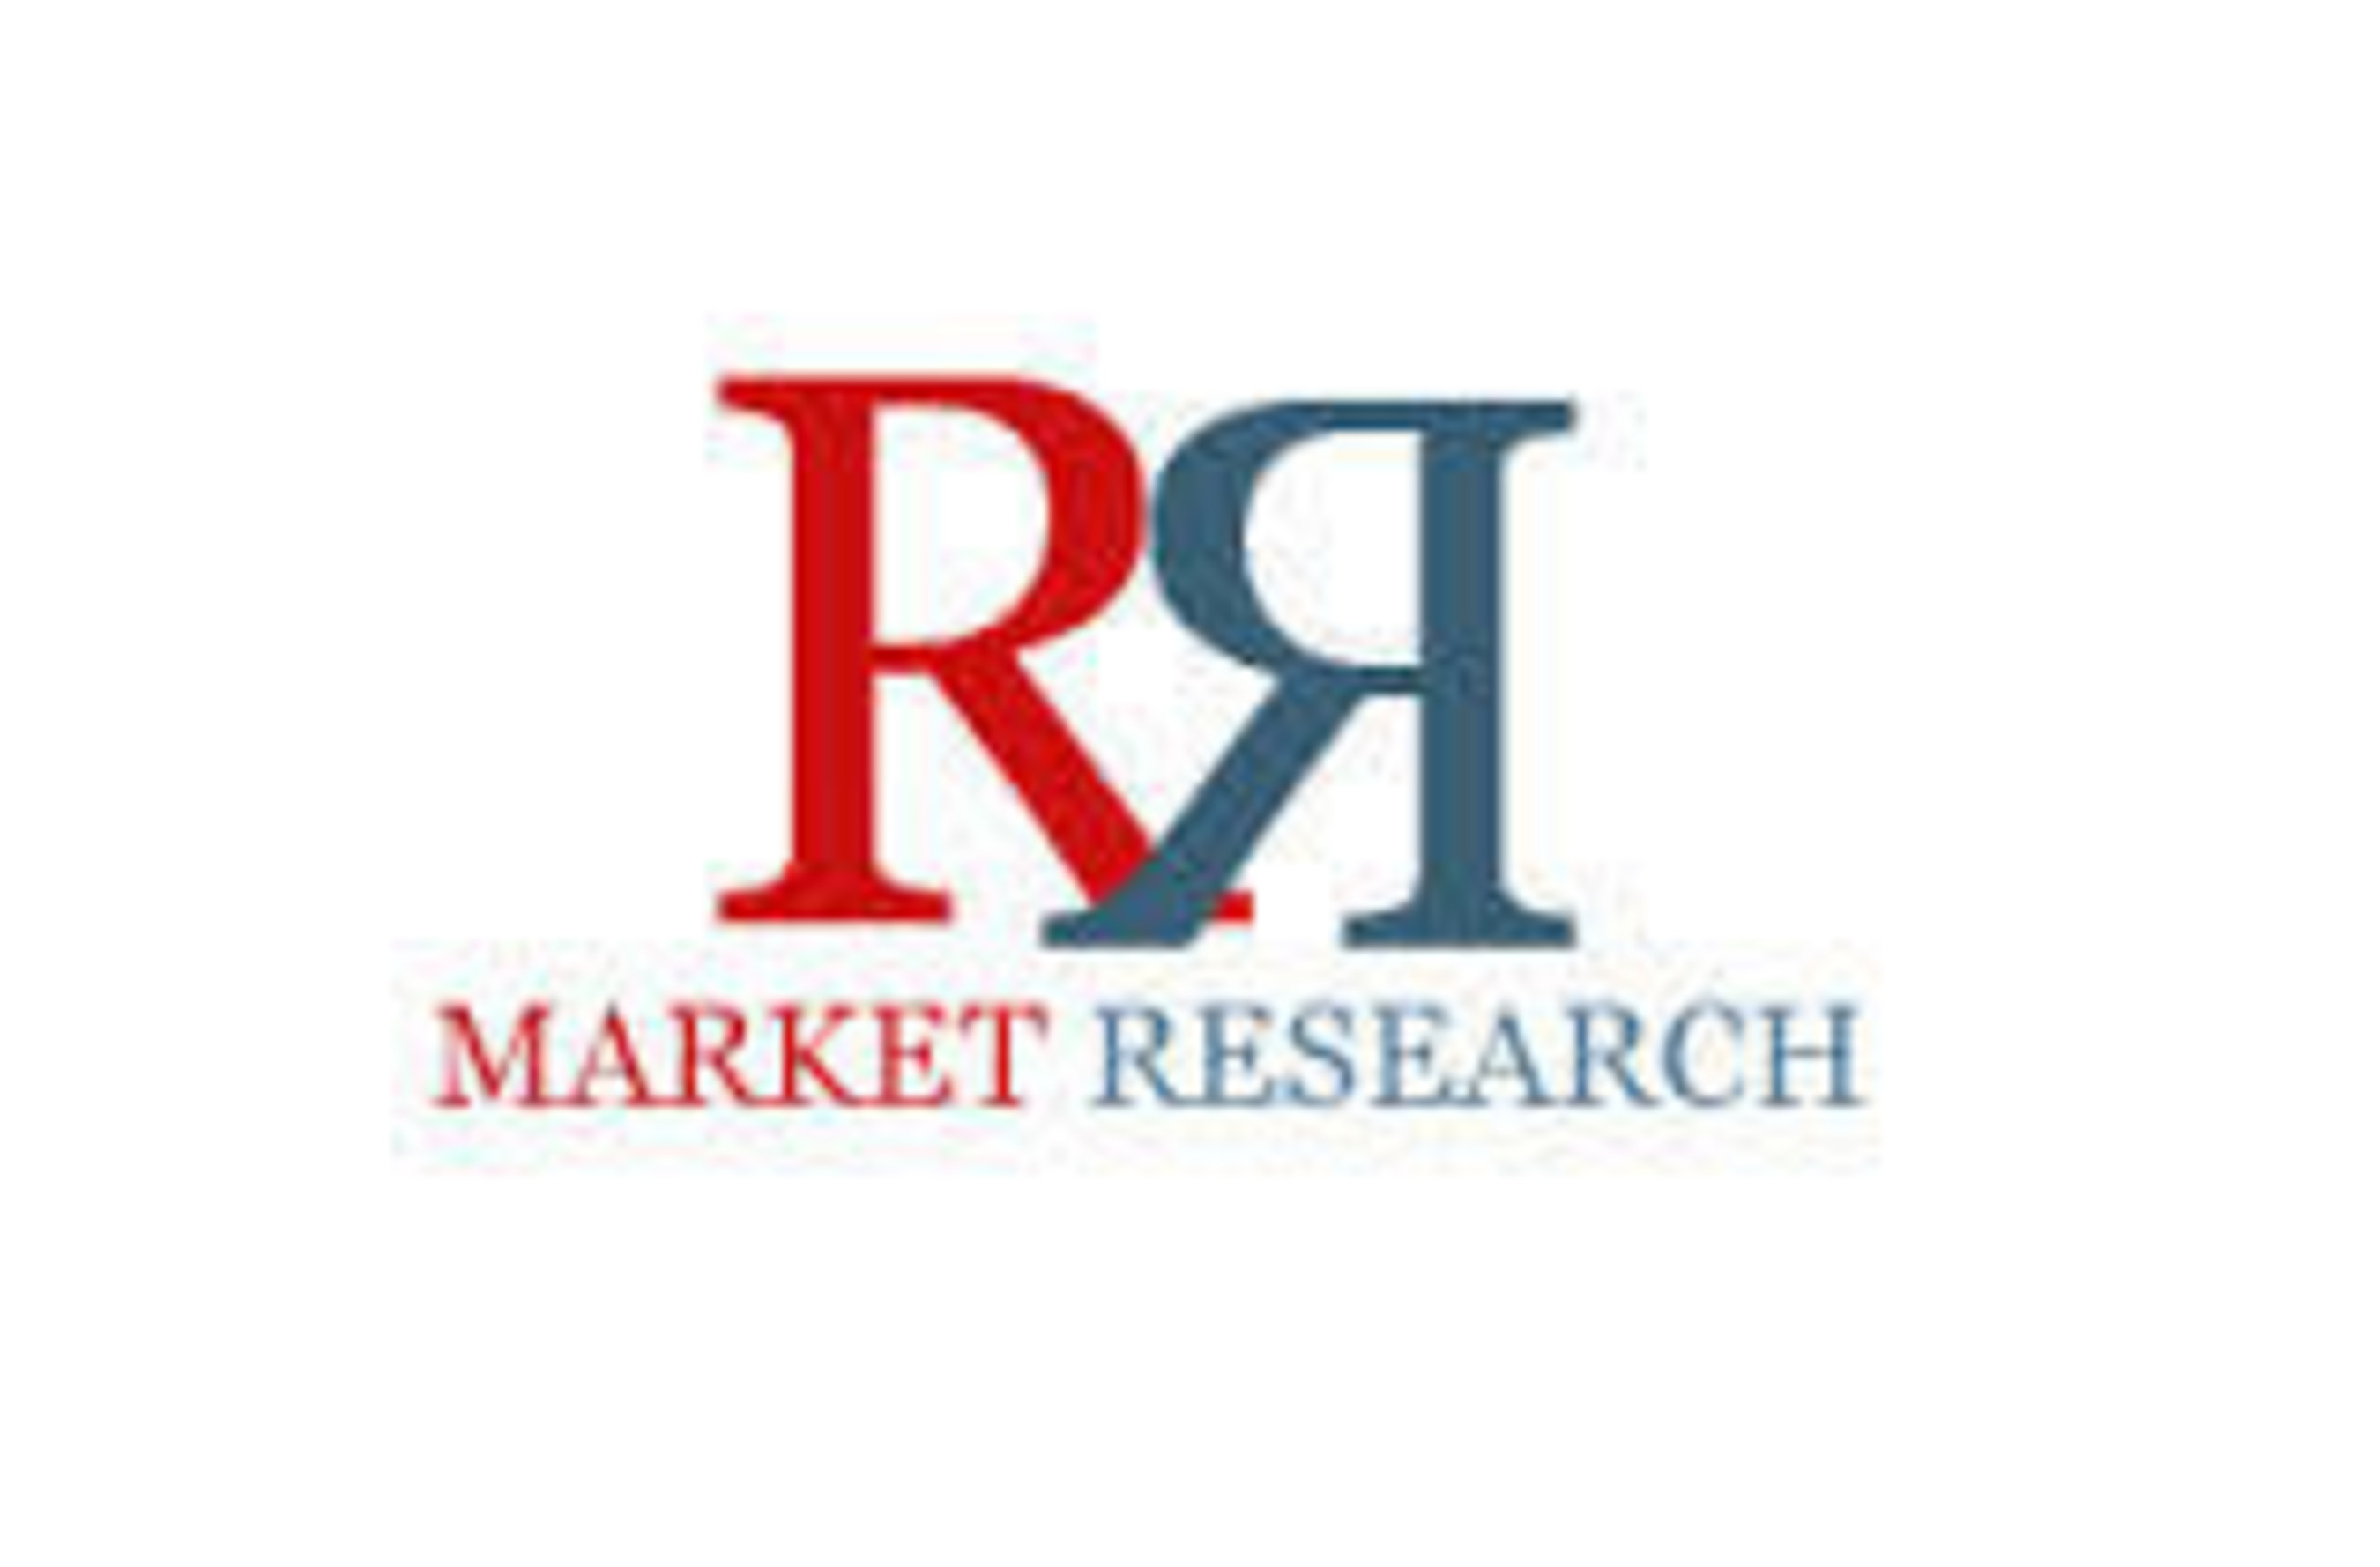 Electronic Toll Collection System Market Forecast to 2020 - Research Segmented on Type, Product, Technology, Application, & by Geography